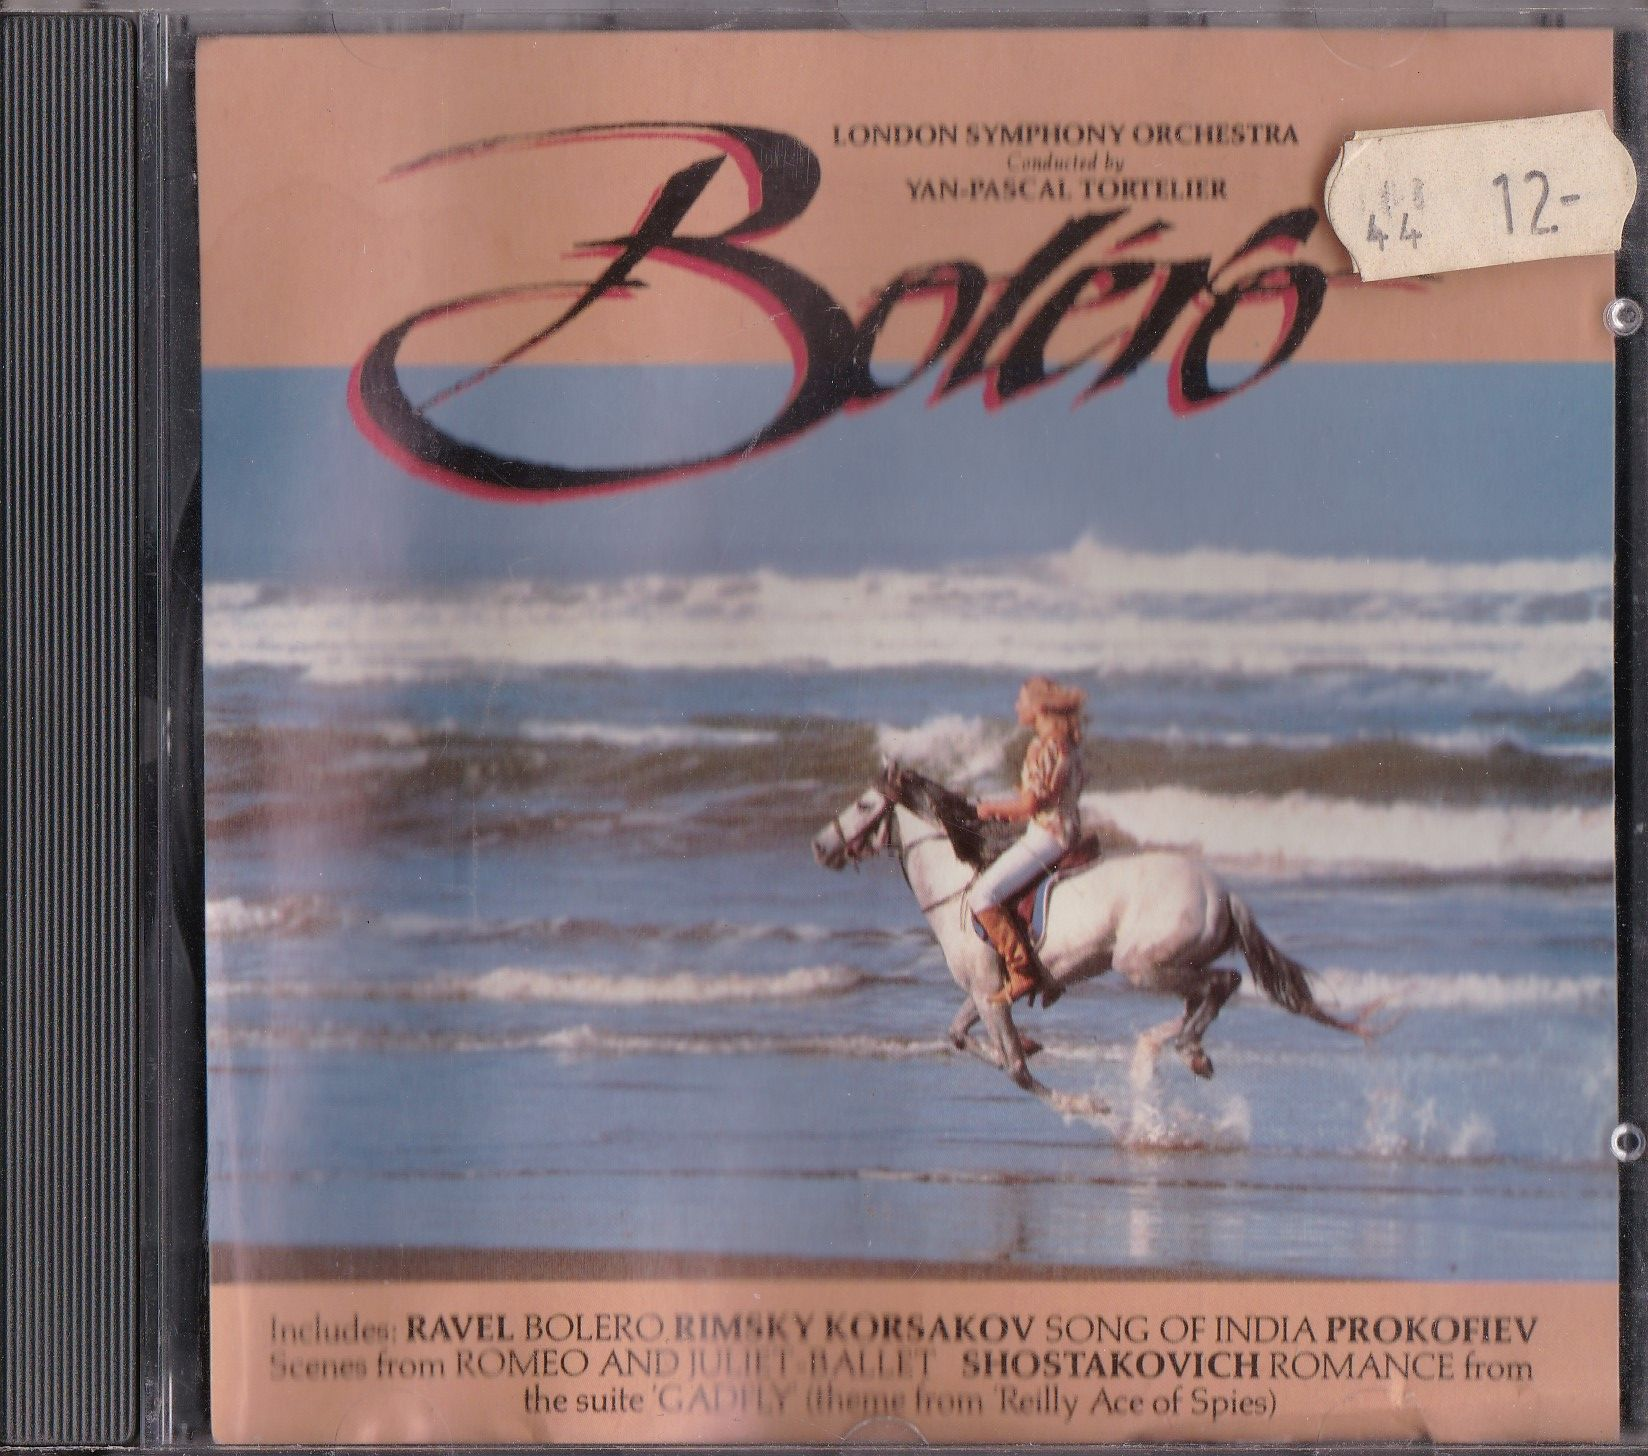 London Symphony Orchestra* Conducted By Yan-Pascal Tortelier* ‎– Bolero ℗ & © 1993 Kenwest / Disky. Marketing in Europe by Kenwest / Disky.